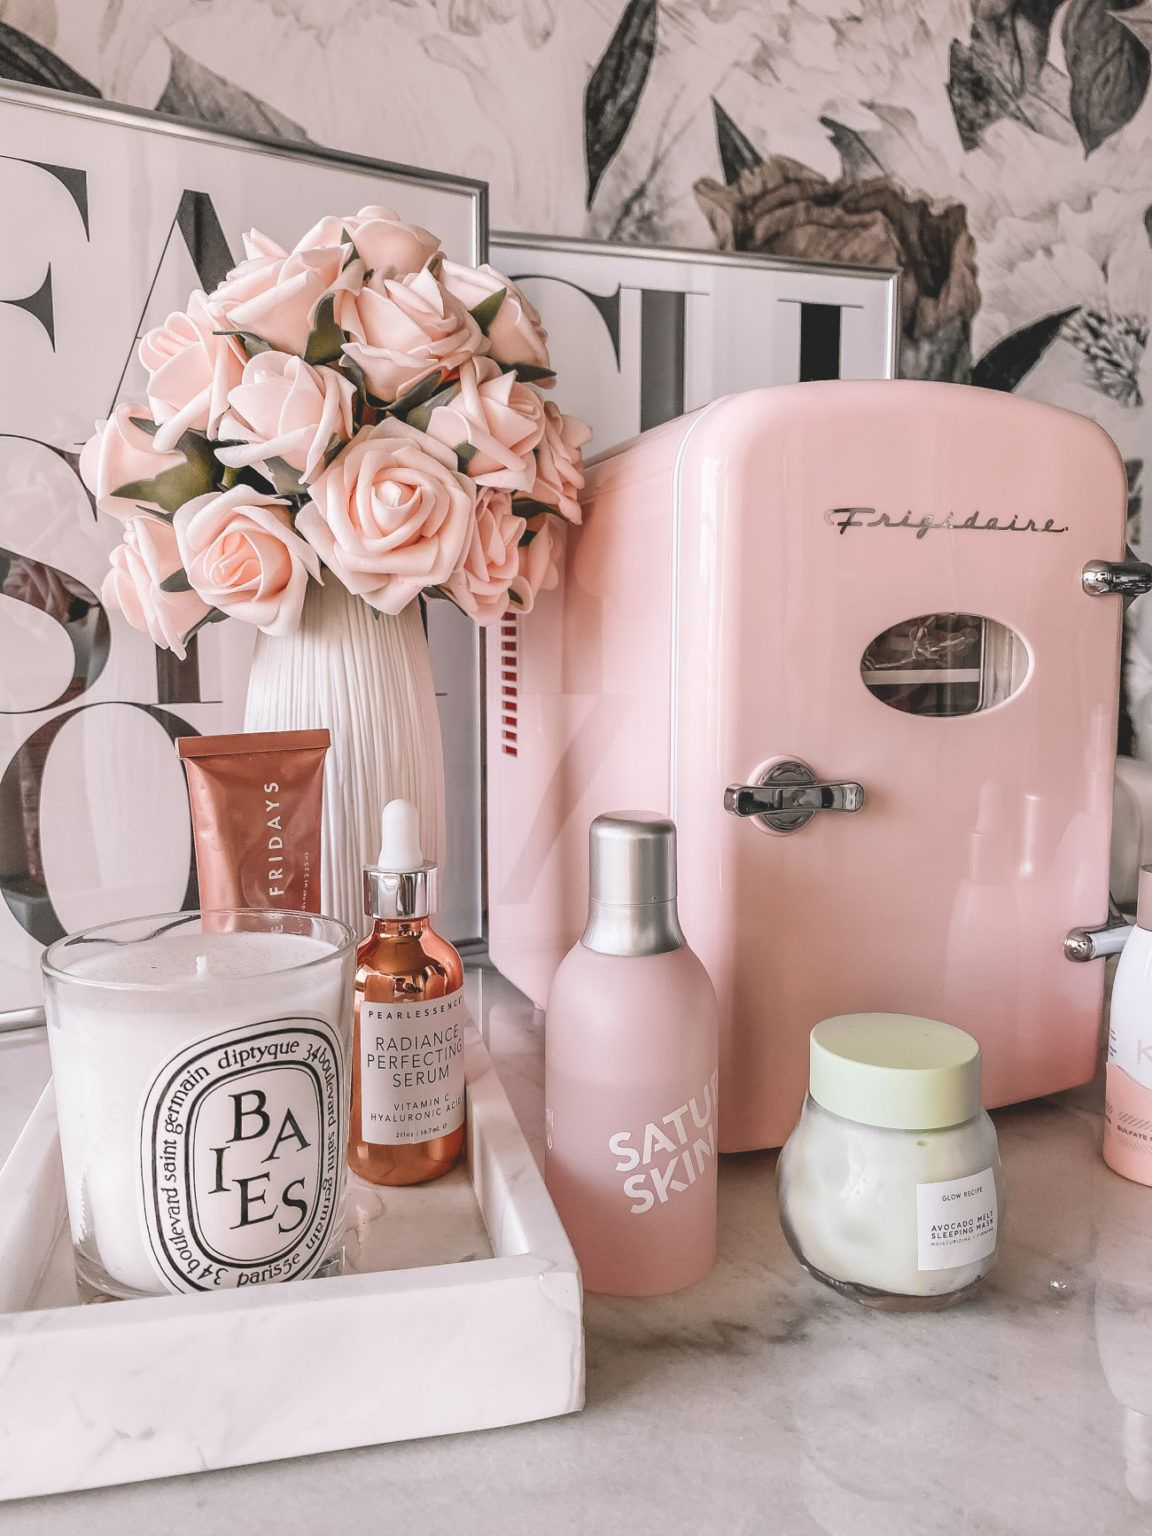 Skincare Fridge Essentials - Do You Have One Yet? - BLONDIE IN THE CITY